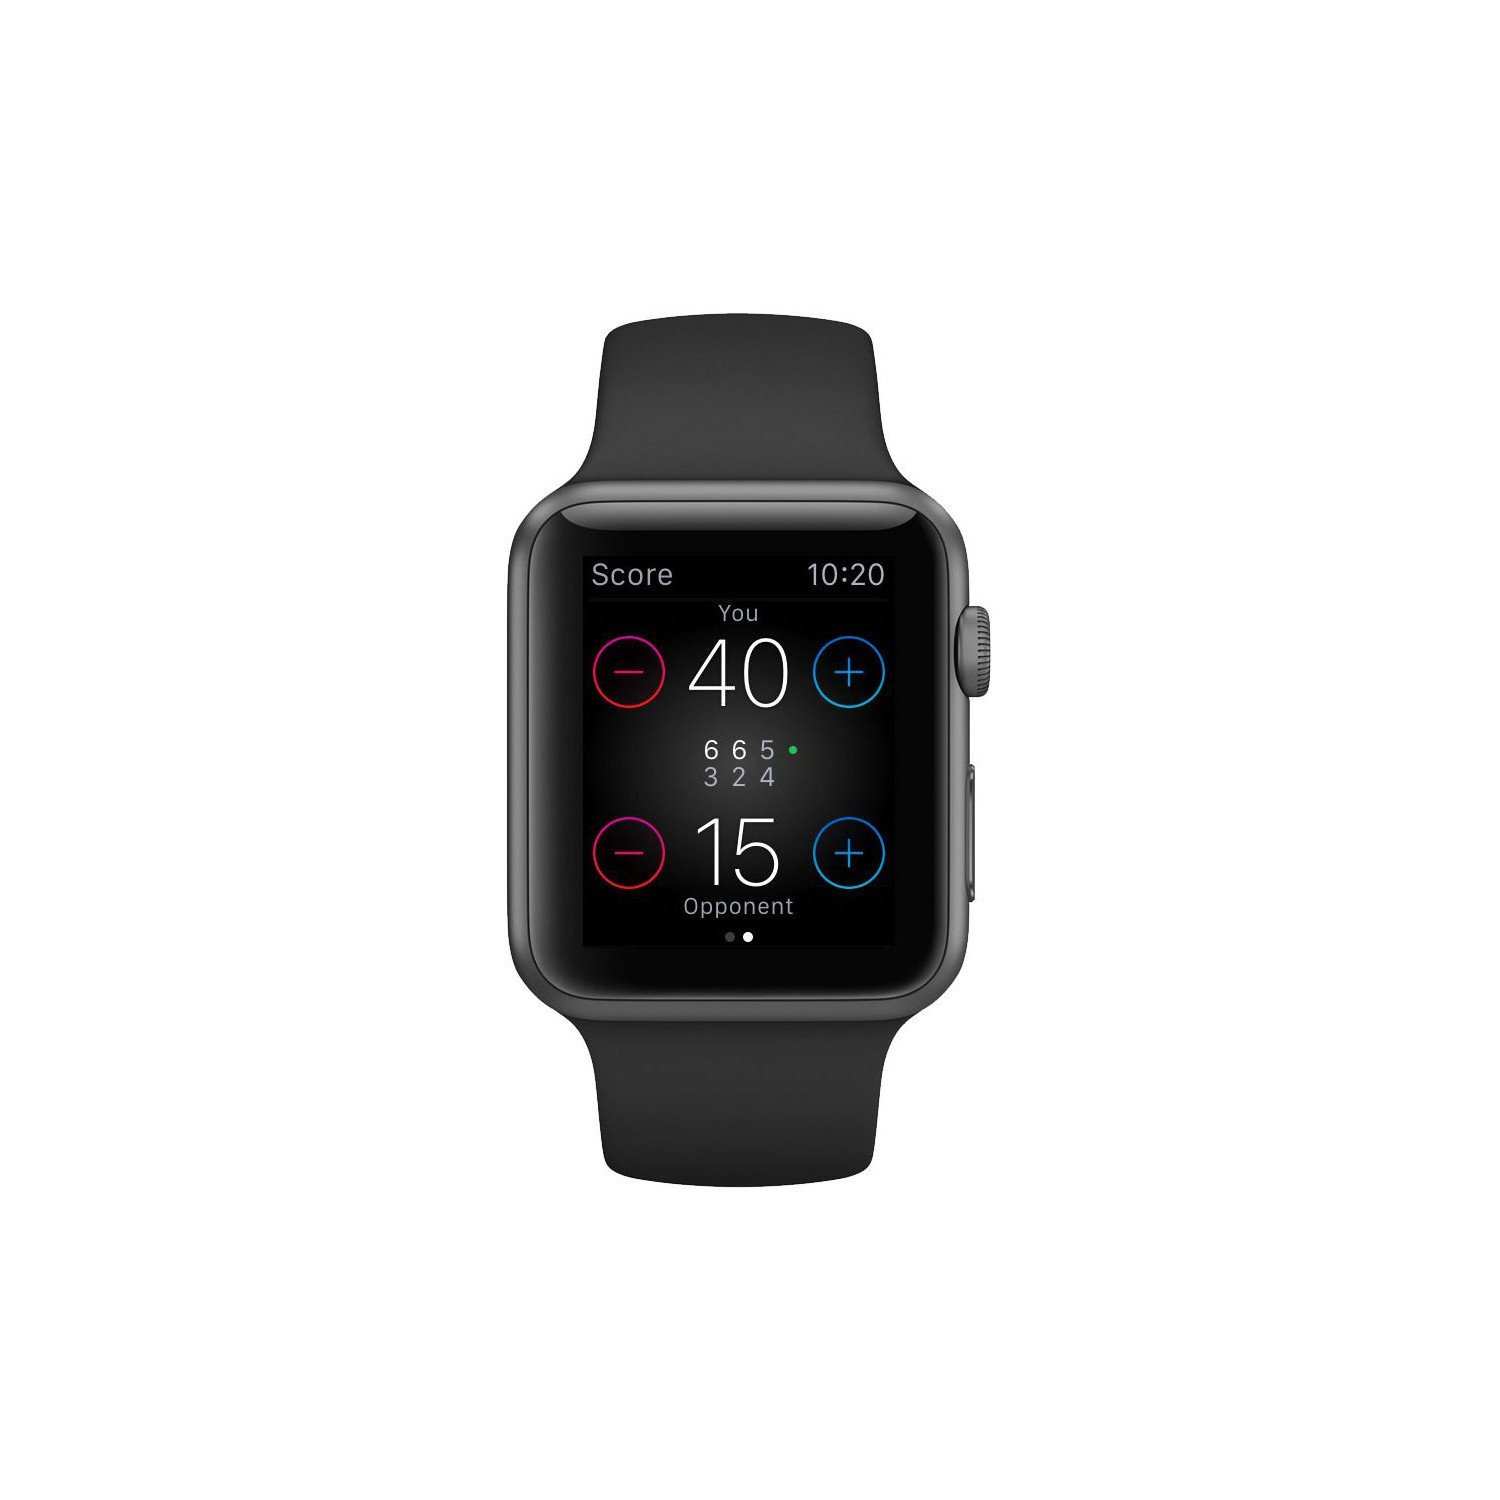 Apple Tennis Watch (TENNIS GIFTS)